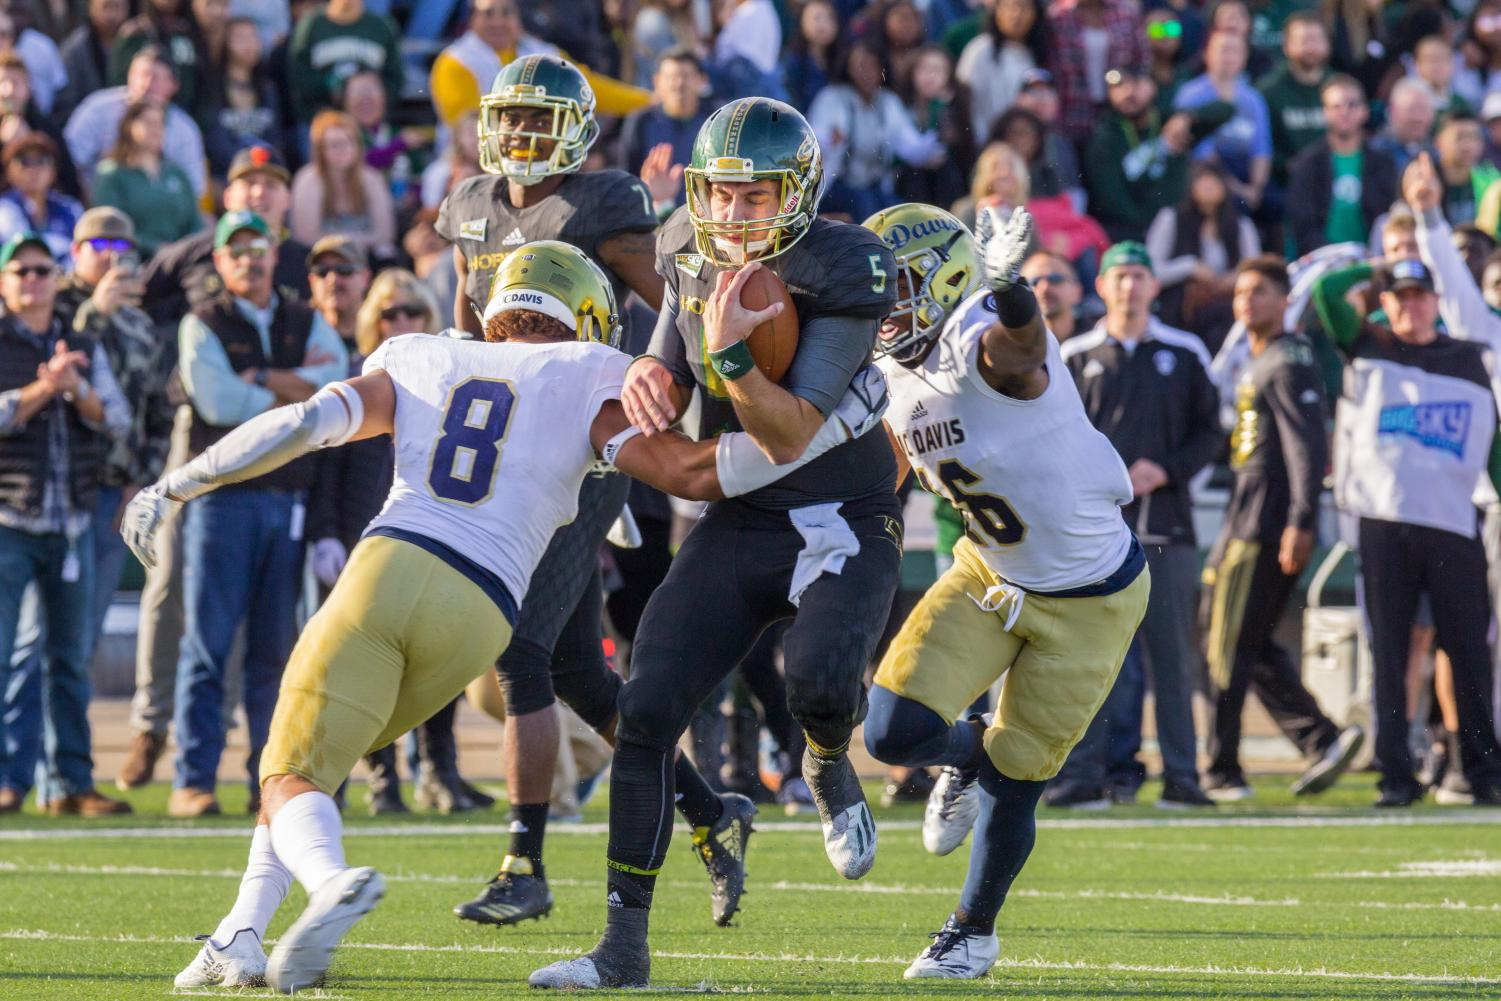 Sacramento State junior quarterback Kevin Thomson, middle, is tackled down by two UC Davis defenders in the 64th annual Causeway Classic at Hornet Stadium on Saturday, Nov. 18, 2017. Sac State defeated the Aggies 52-47.